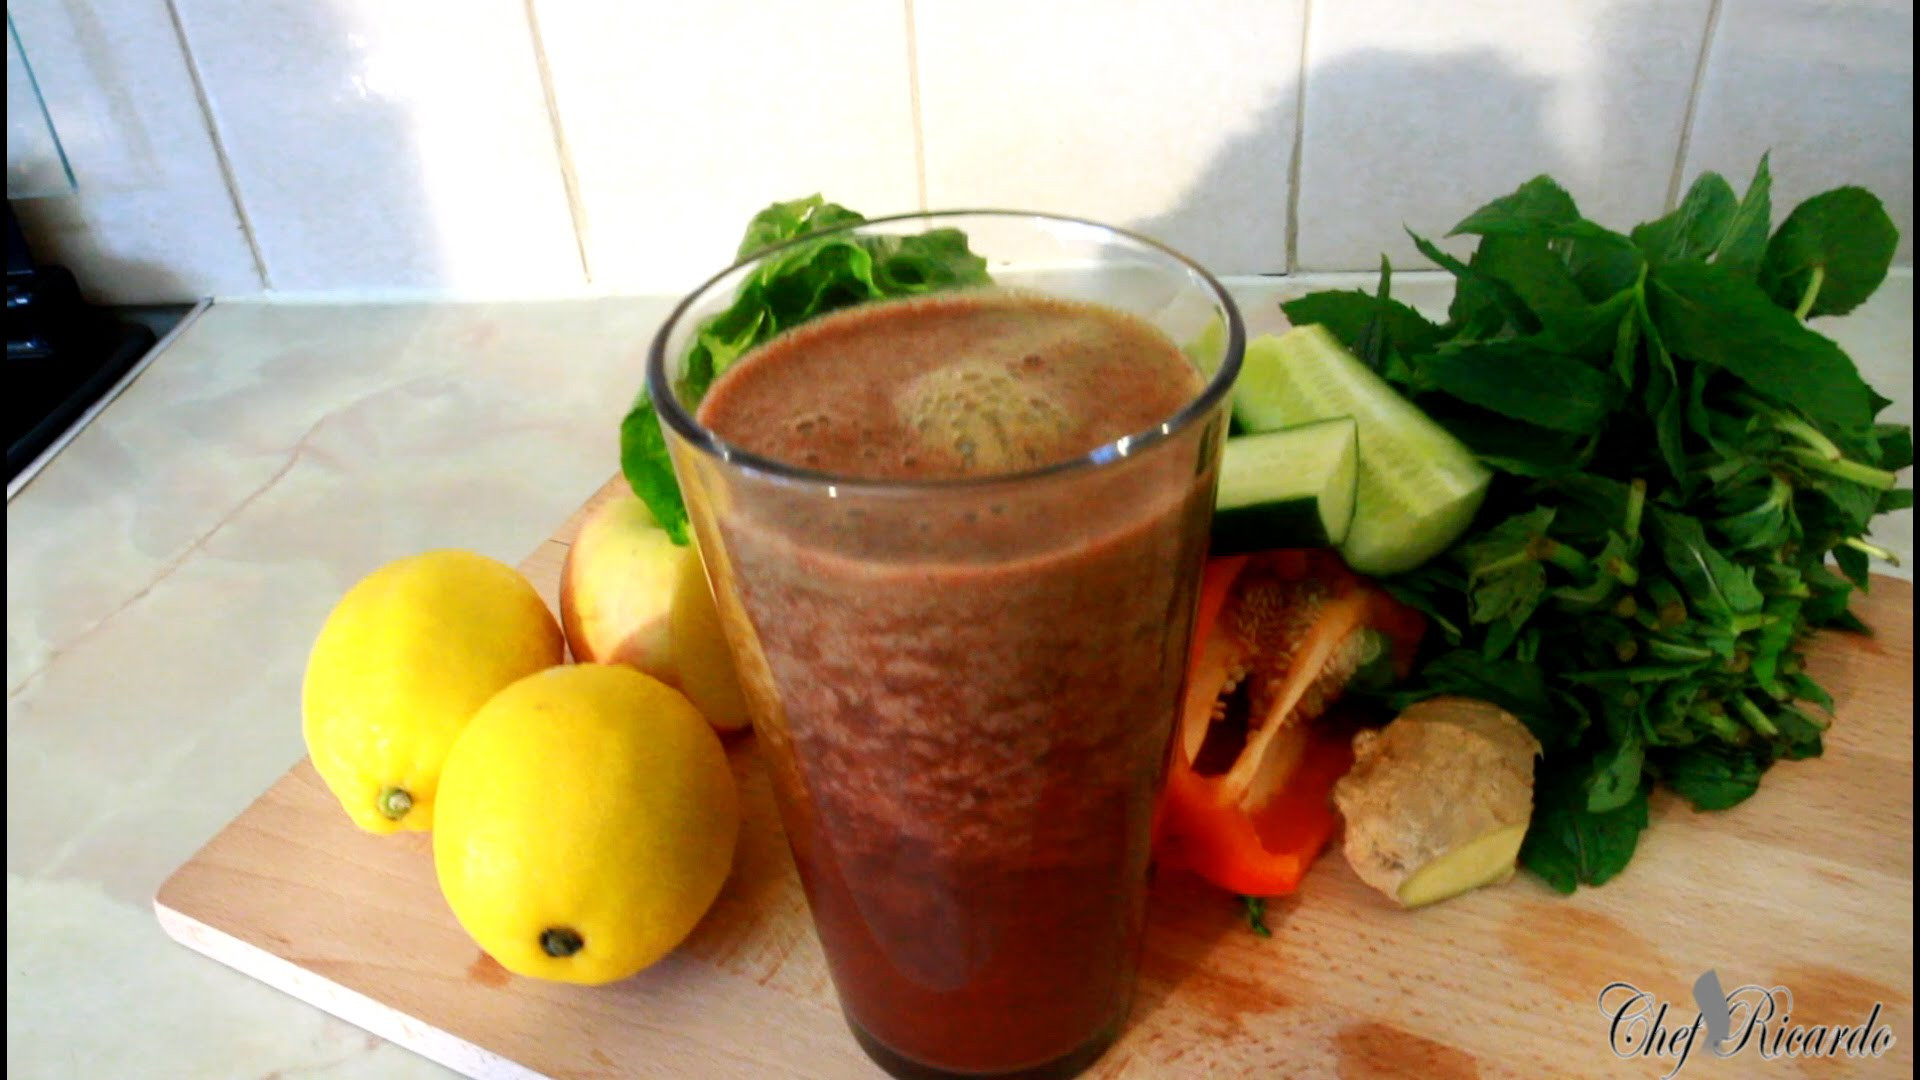 Making Healthy Smoothies At Home  How To Make A Healthy Smoothie AT HOME Jamaican Videos